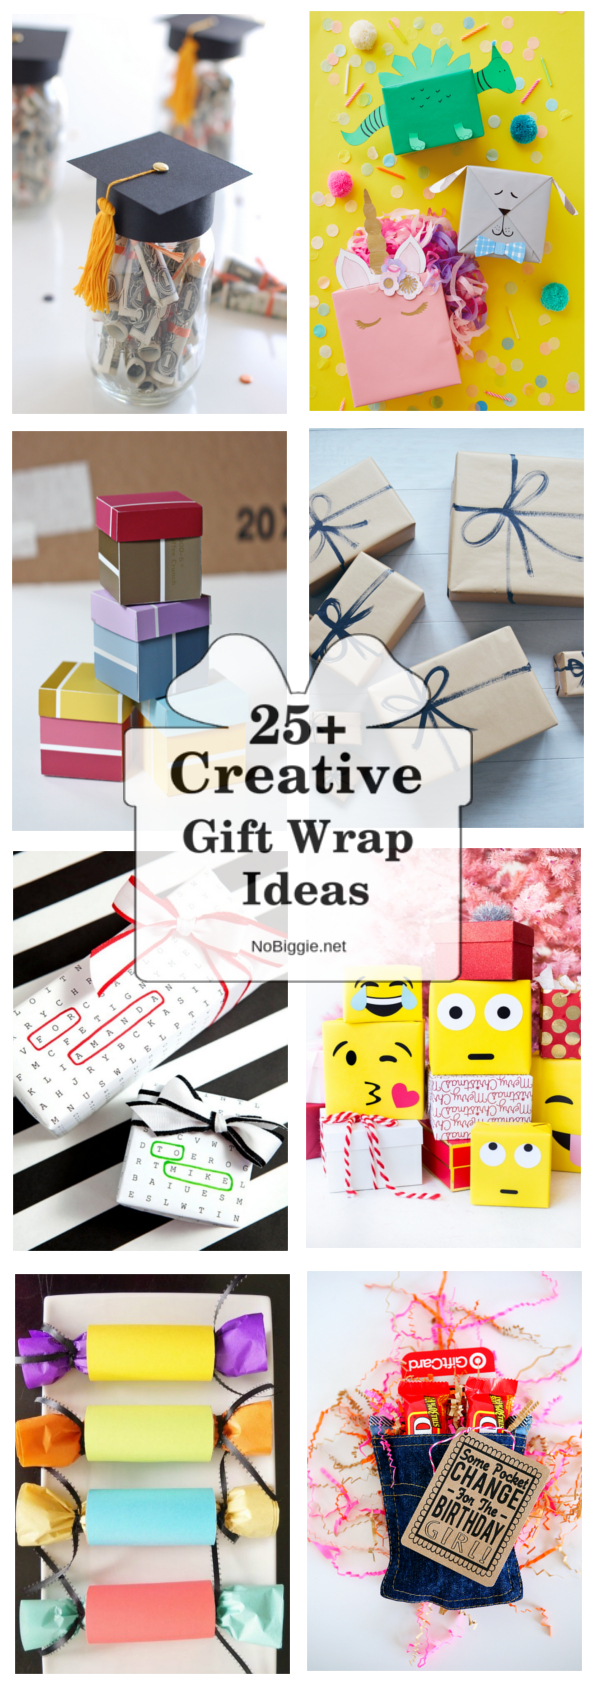 25+ Creative Gift Wrap Ideas | NoBiggie.net